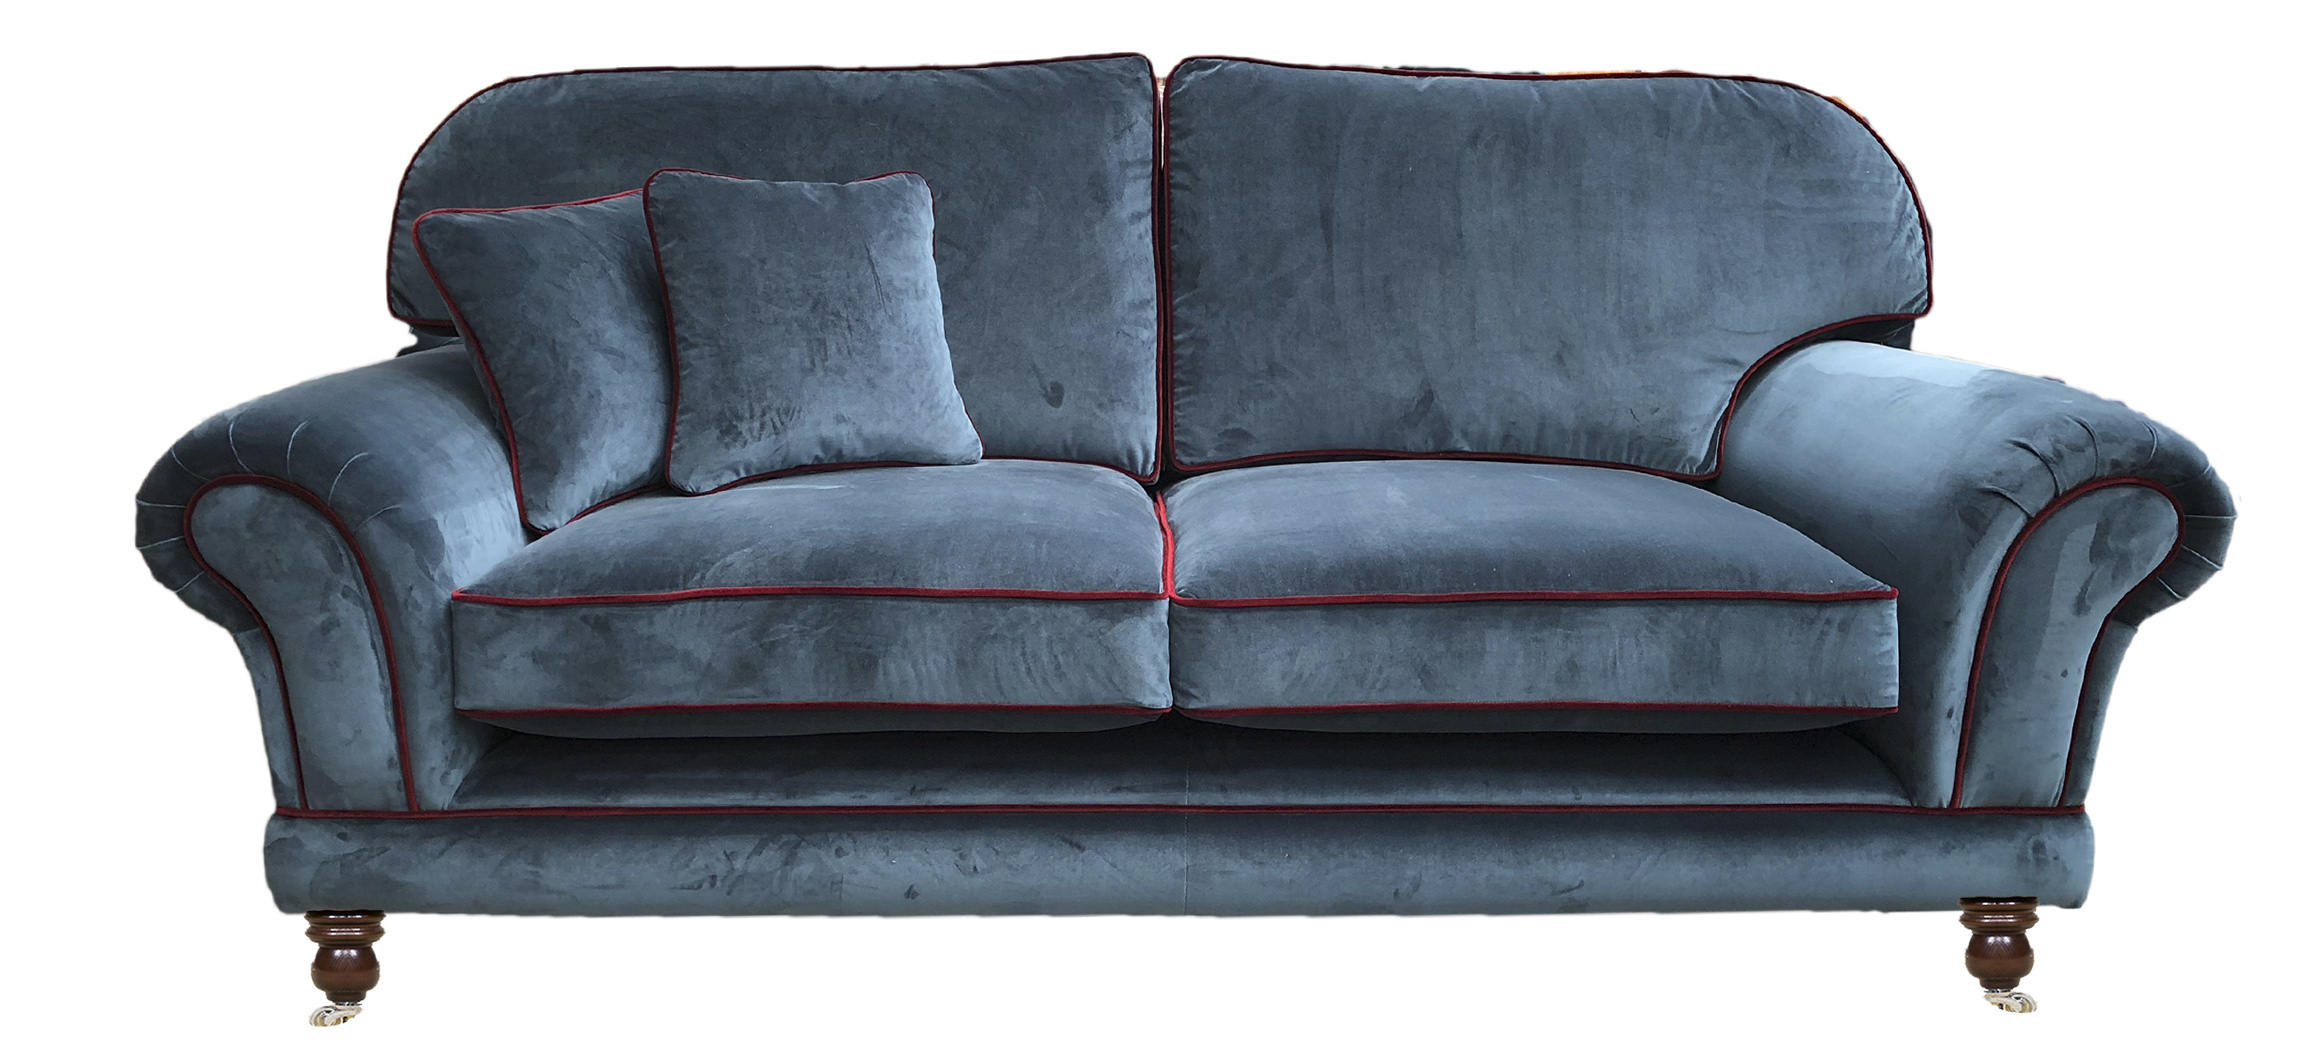 Bespoke Alexandra Large Sofa, Back Cushion to Finish  Straight in  Customers Own Fabric